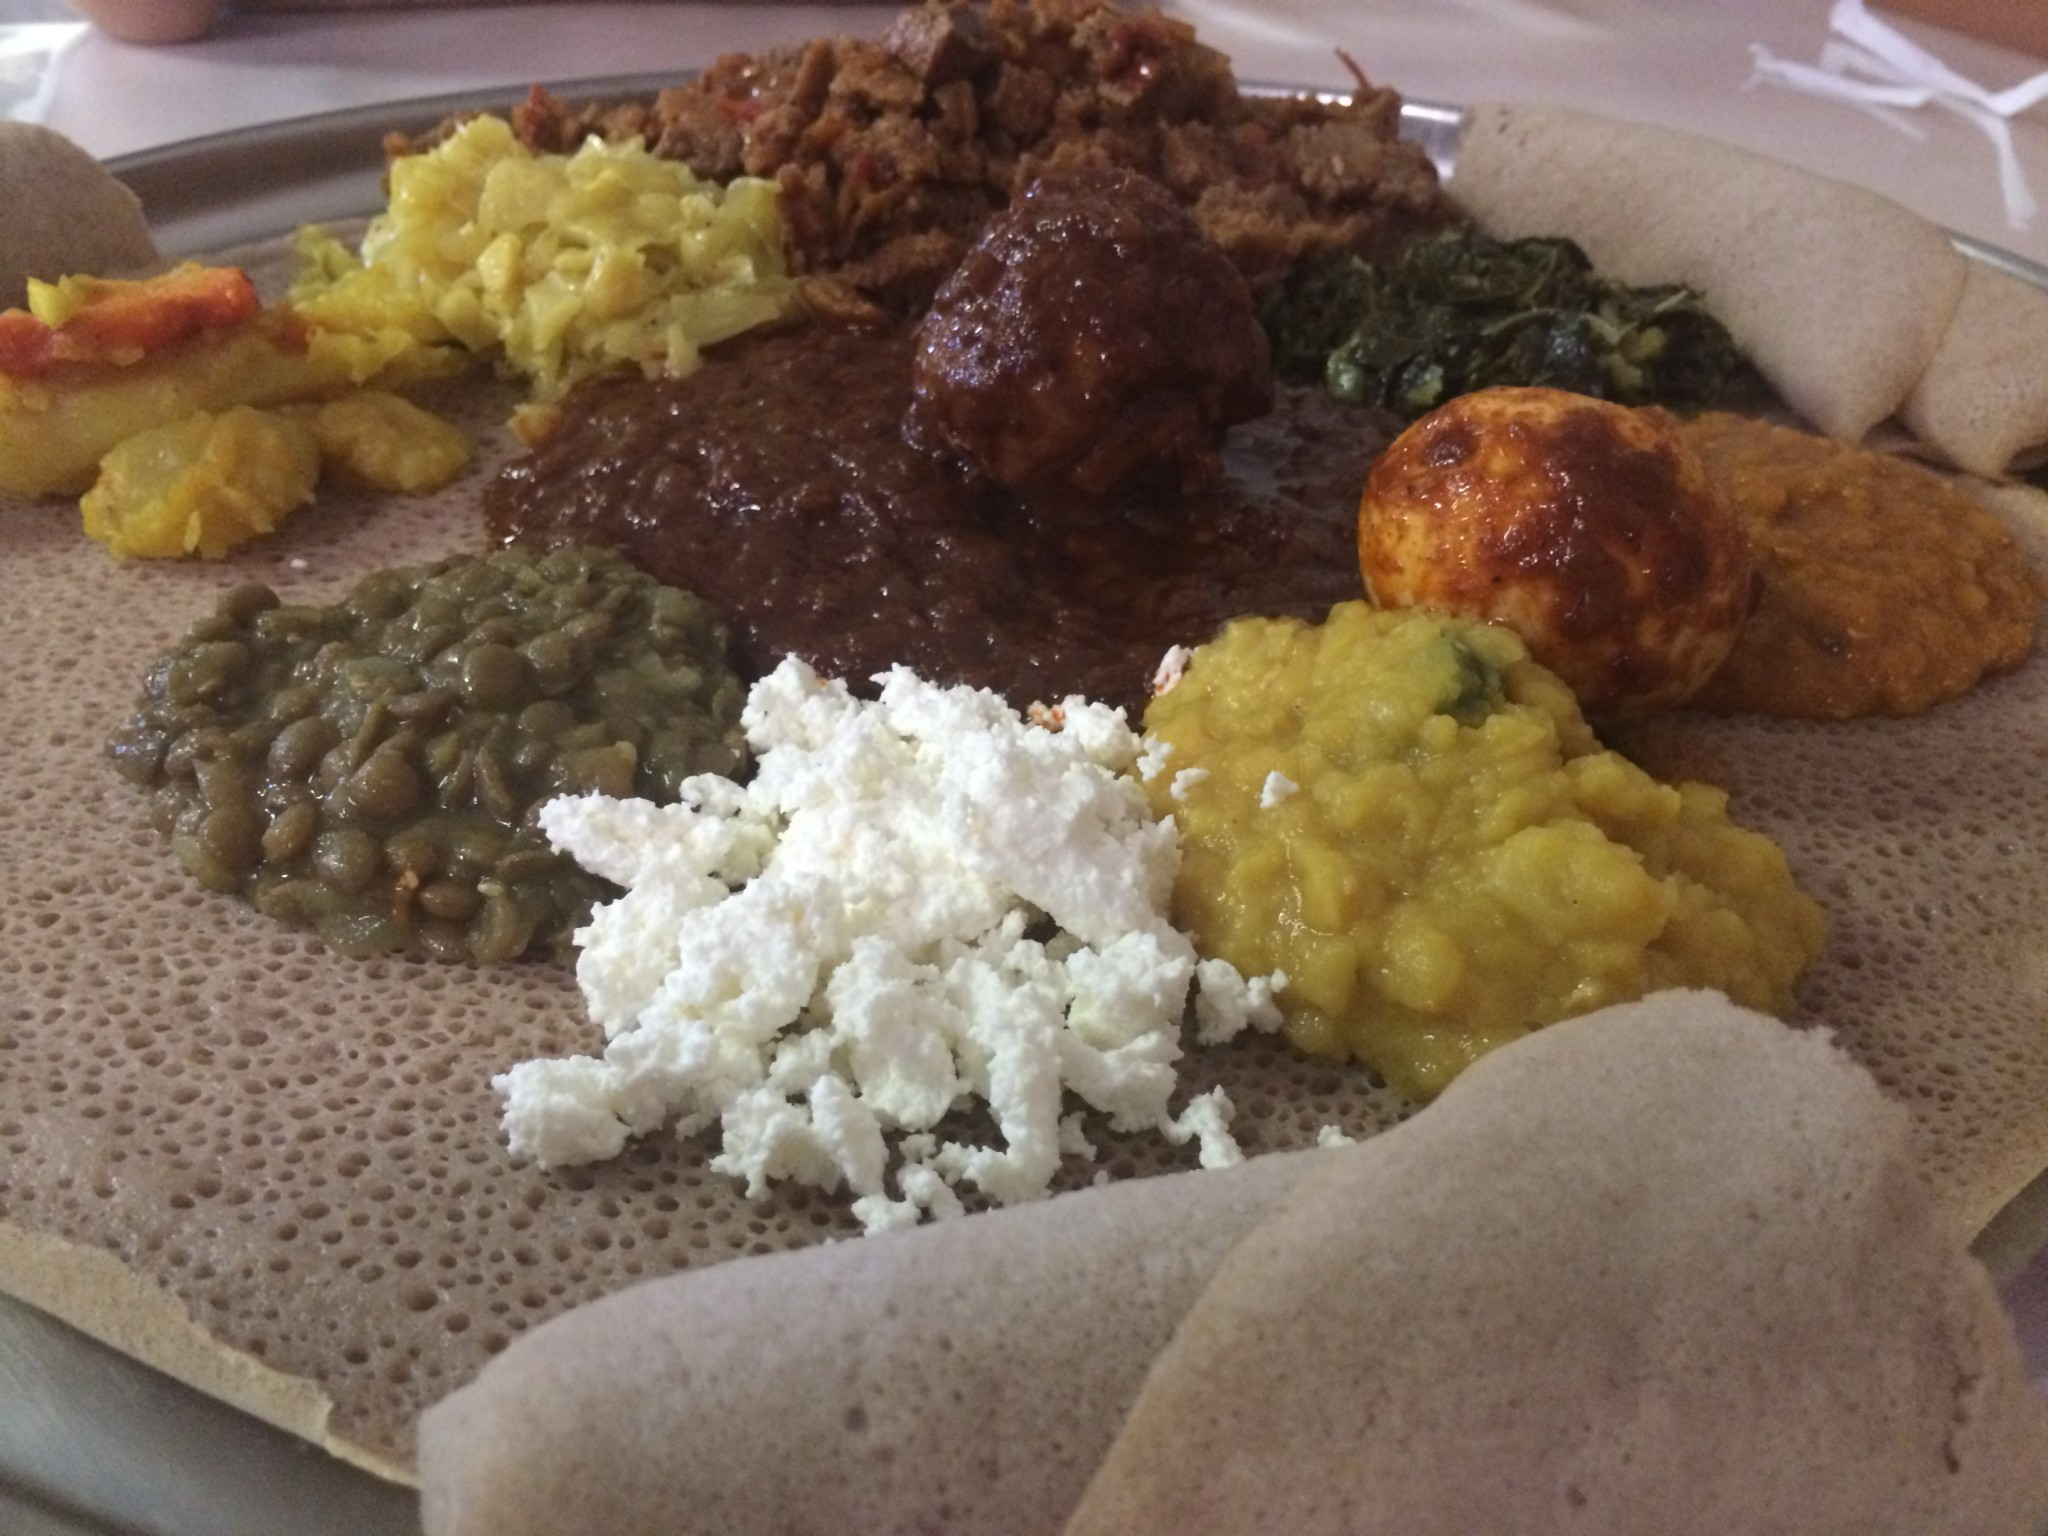 Nile Ethiopian Restaurant - Eat Out of Your Comfort Zone